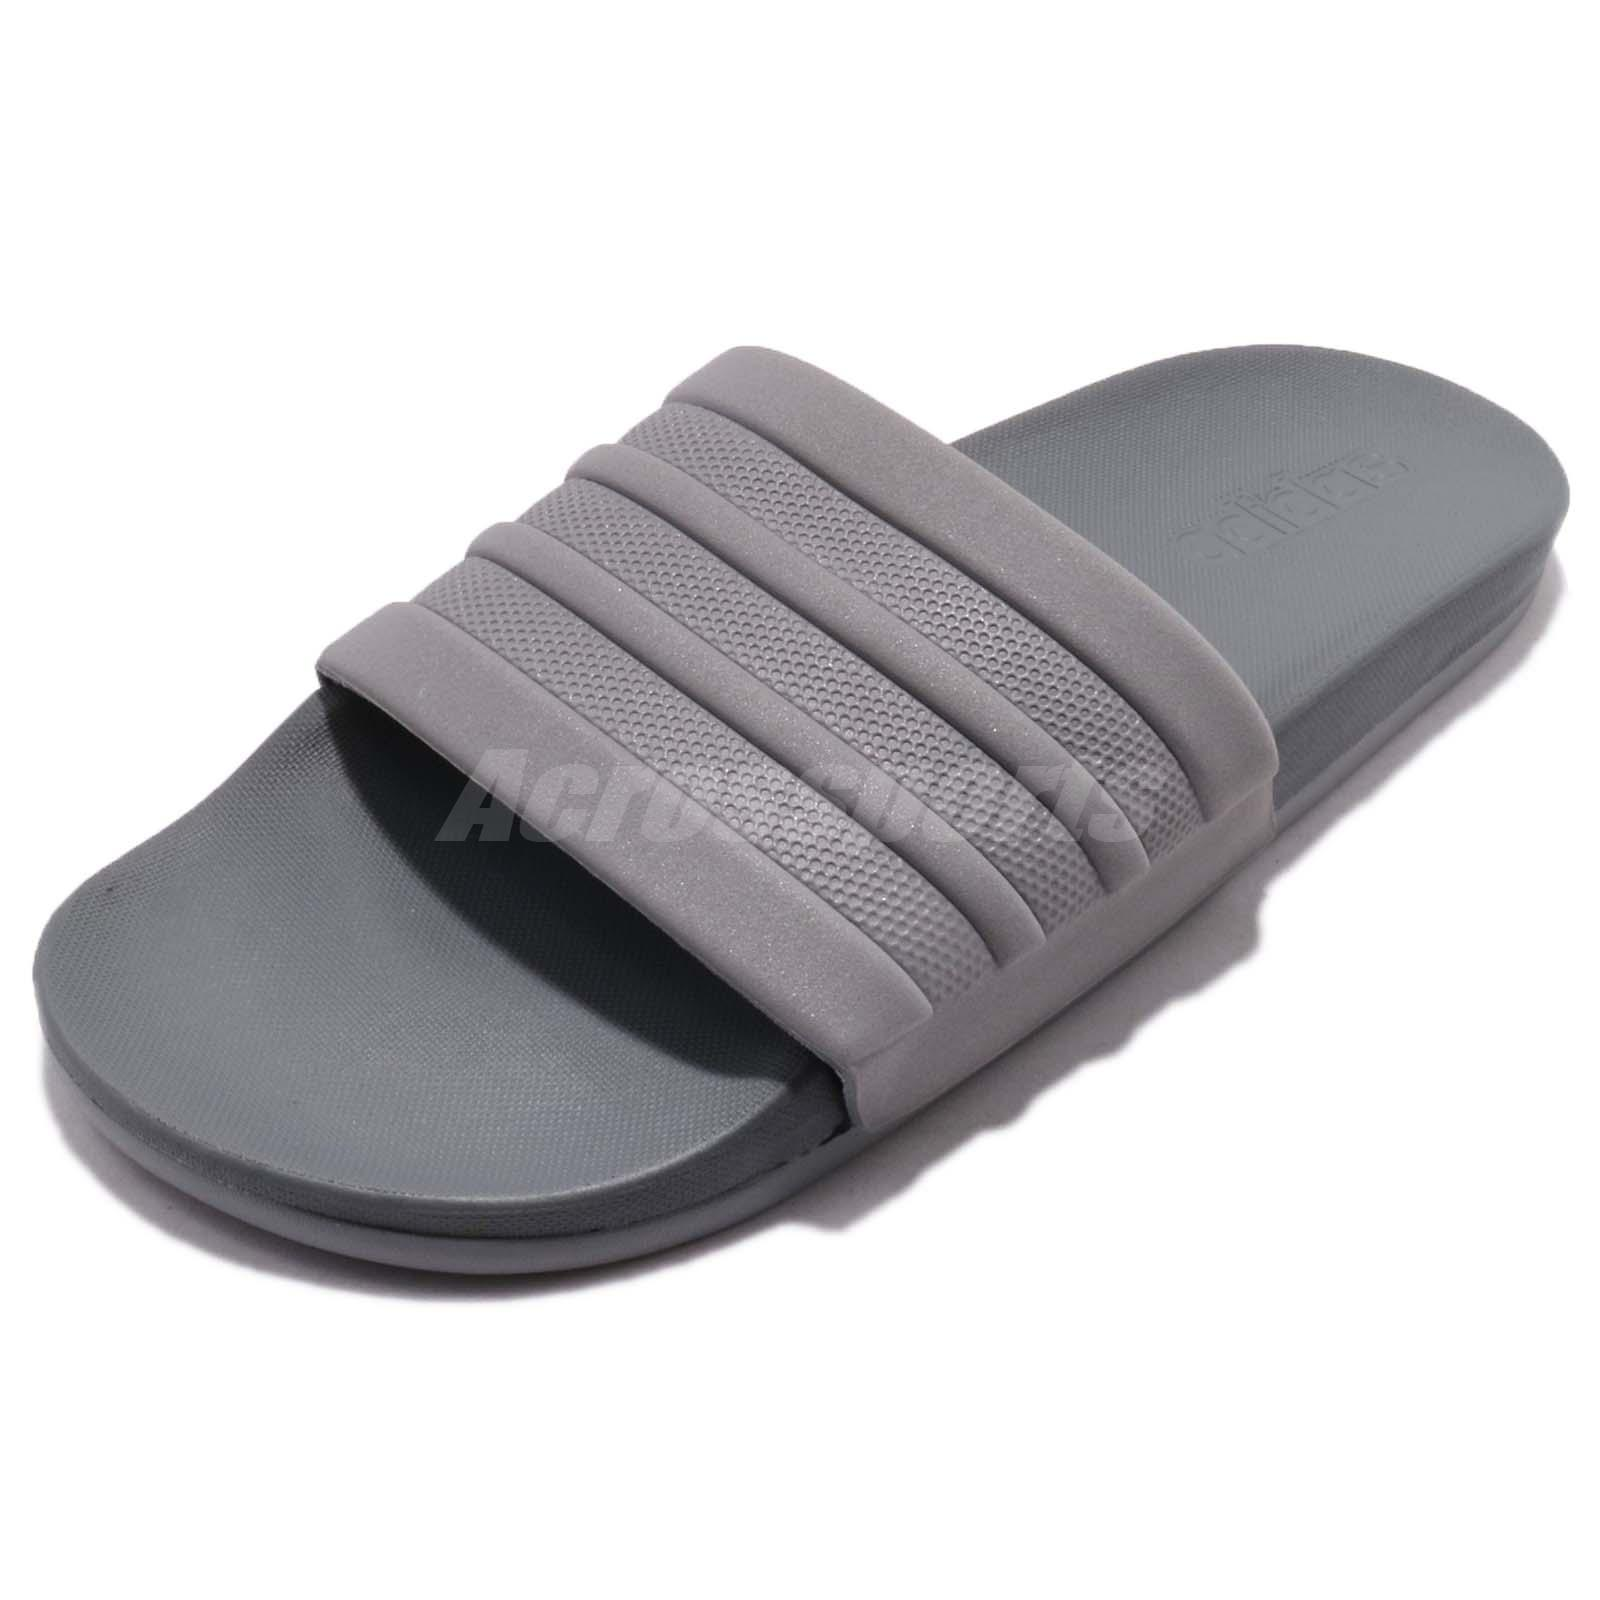 4fc0c5ed8ee adidas Adilette Comfort Grey Three Men Sports Sandal Slides Slippers S80977